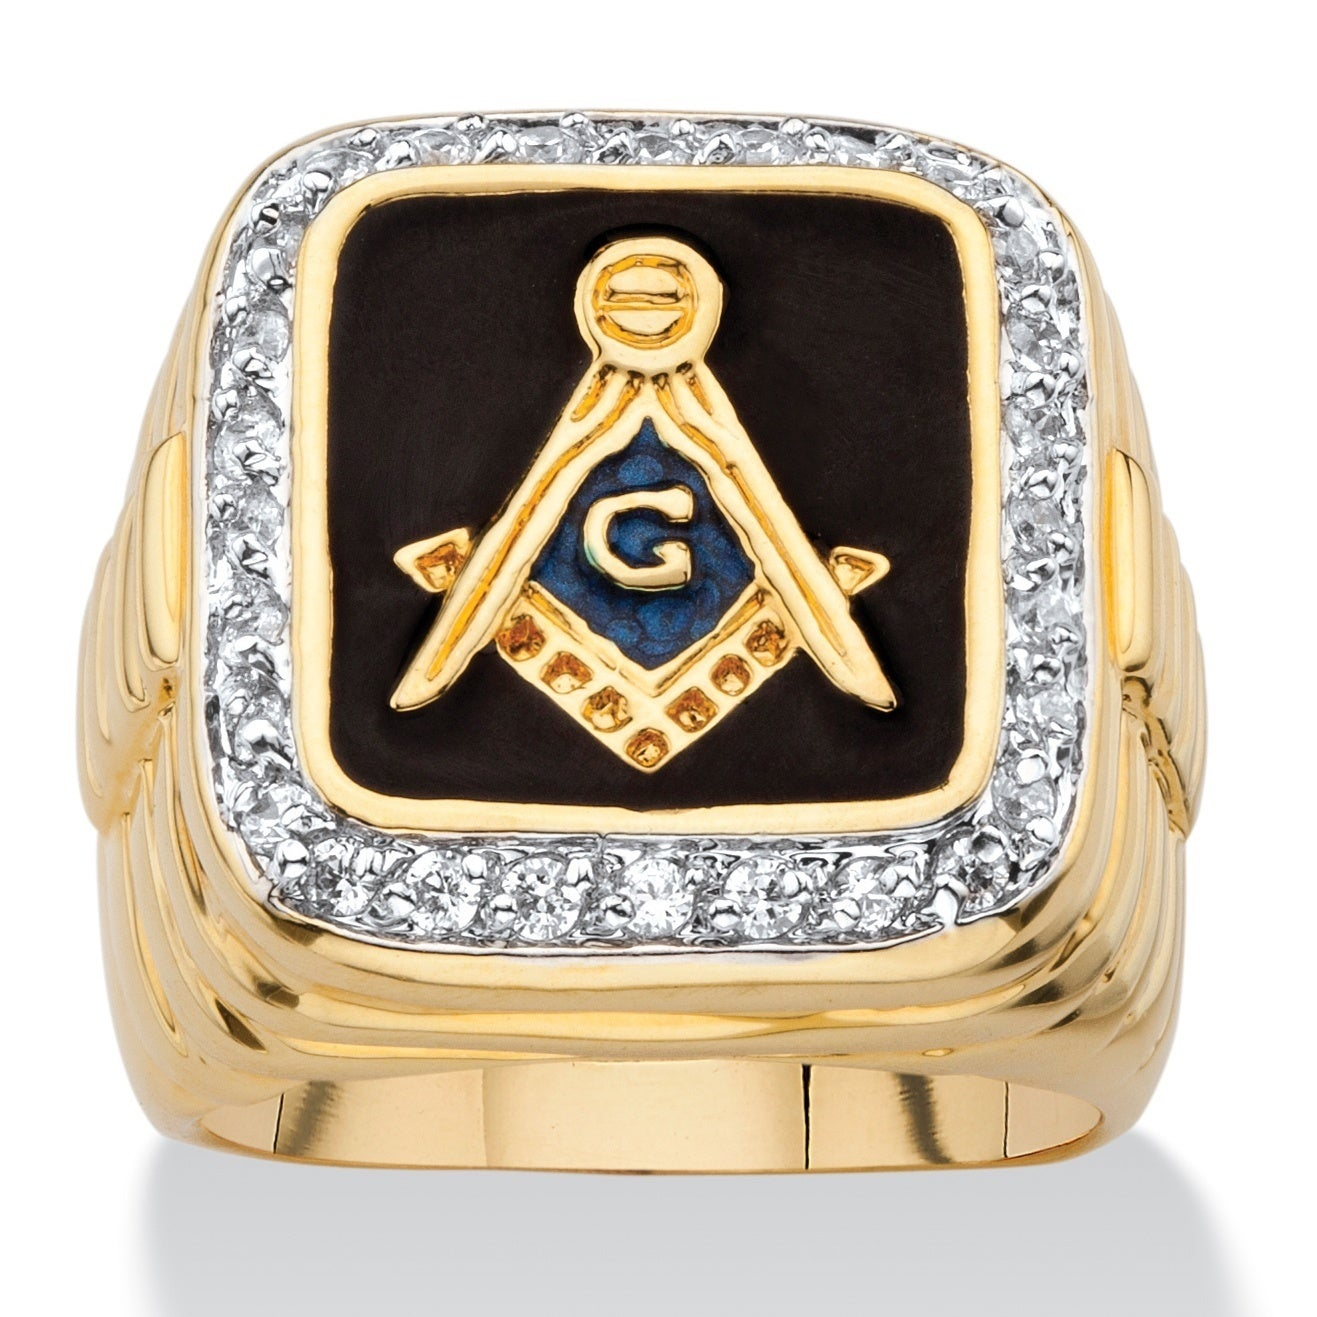 Palm Beach 14k Yellow Gold Overlay Men's Enamel and Cubic...